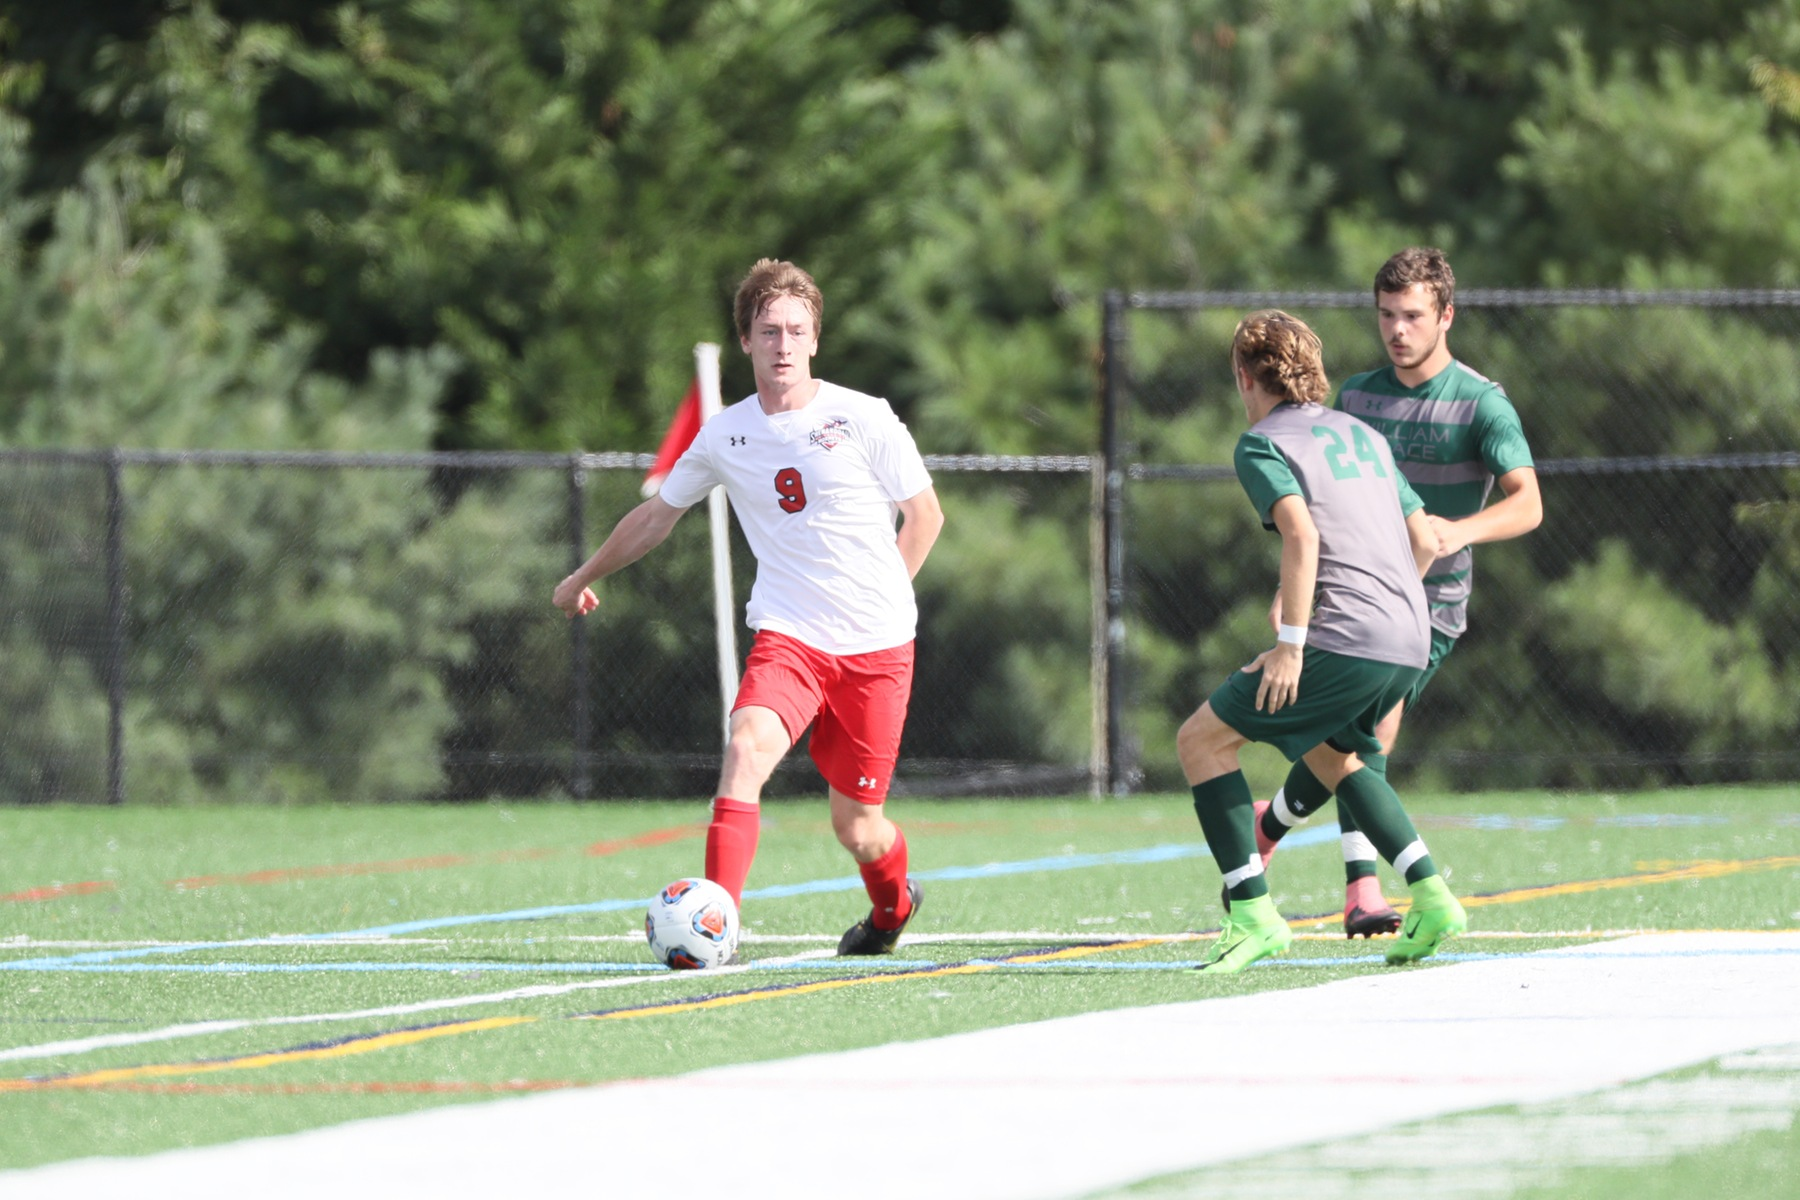 Senior Nick Seymour scored in the 88th minute in the 5-0 win over the SVU Knights.